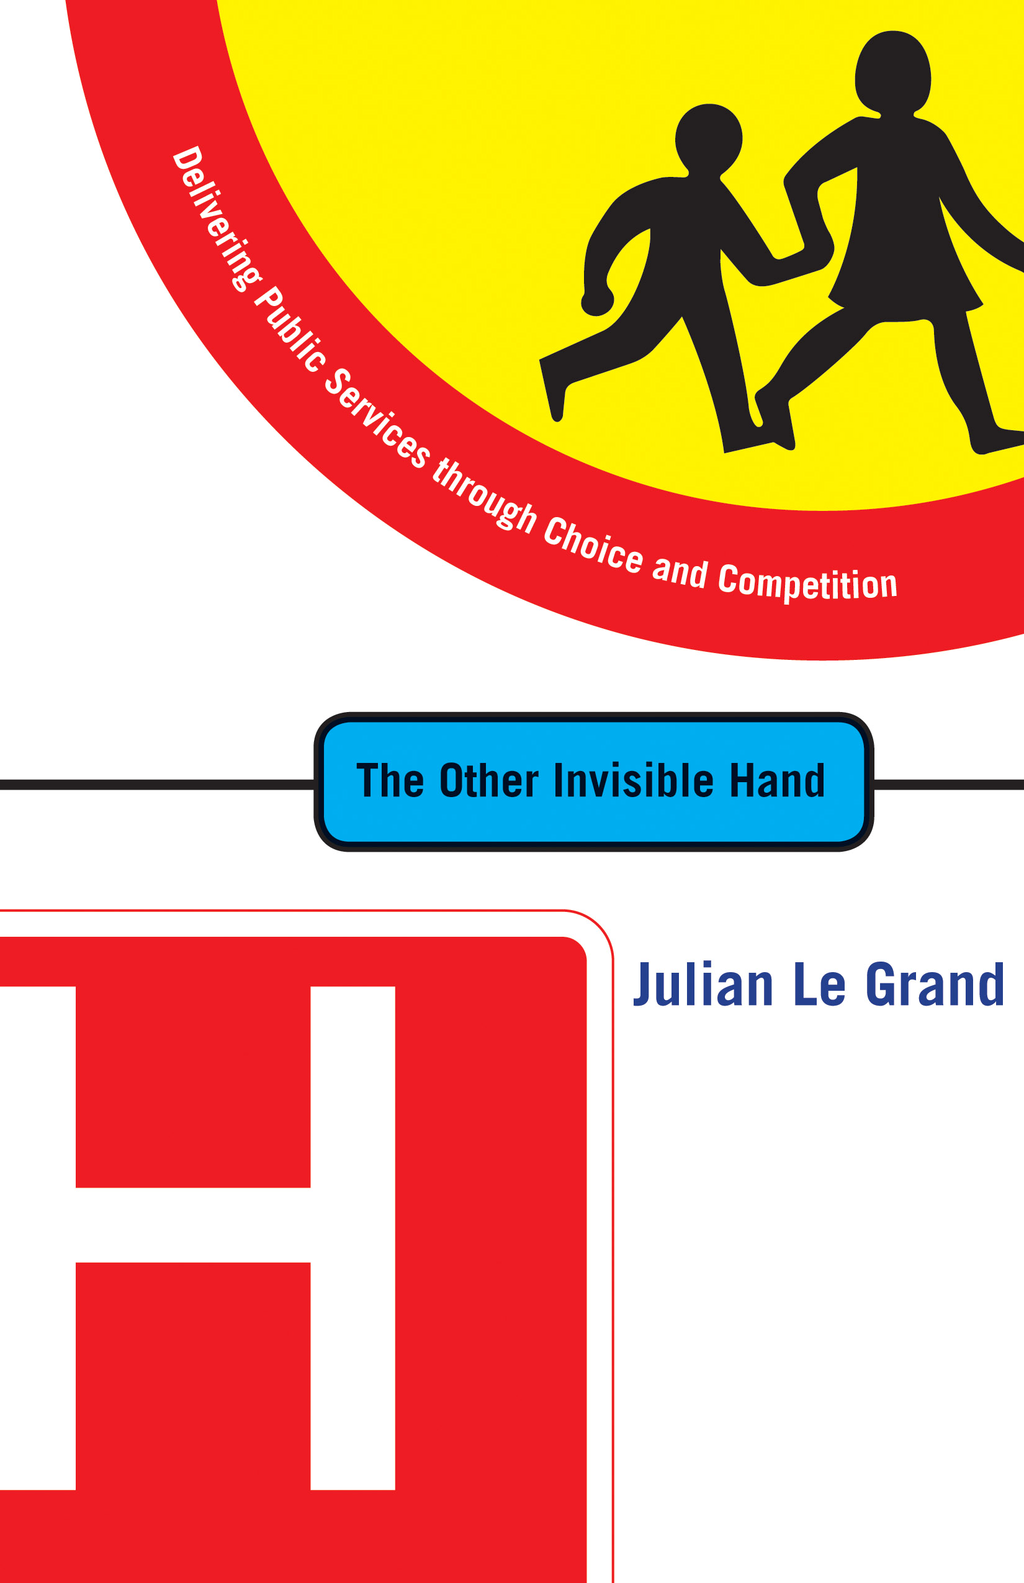 The Other Invisible Hand